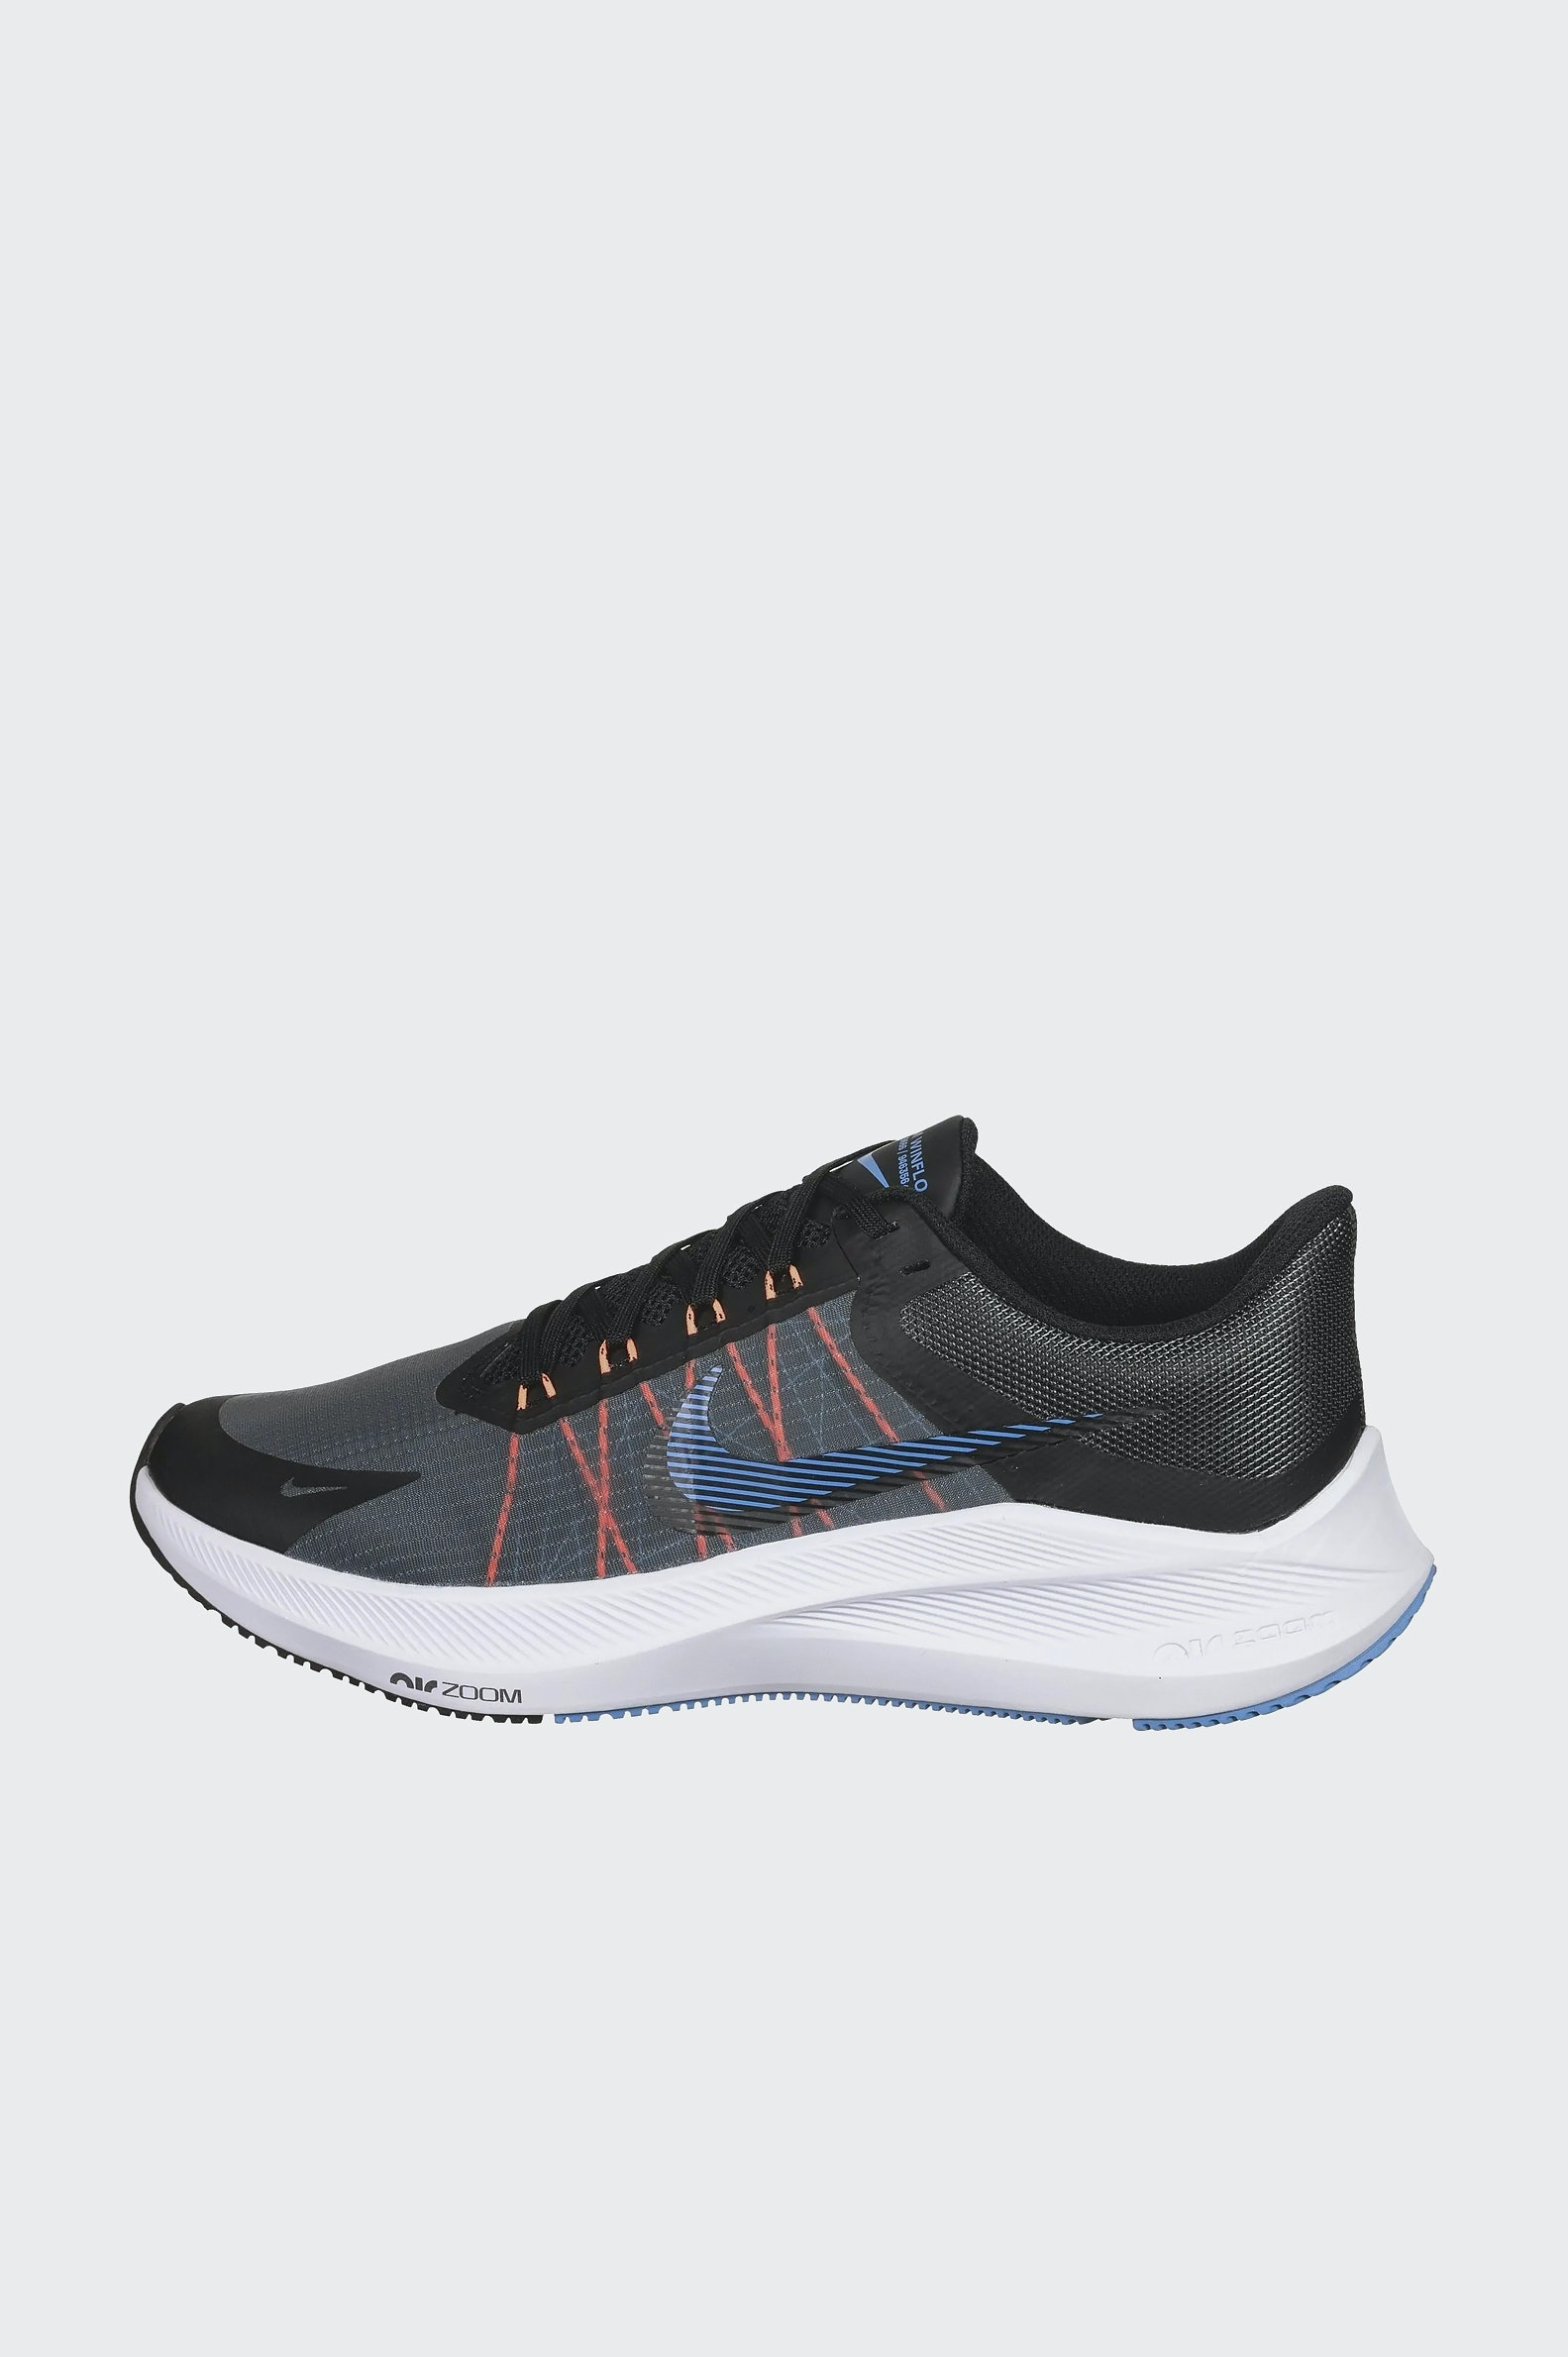 CHAUSSURES RUNNING NIKE WINFLO HOMME